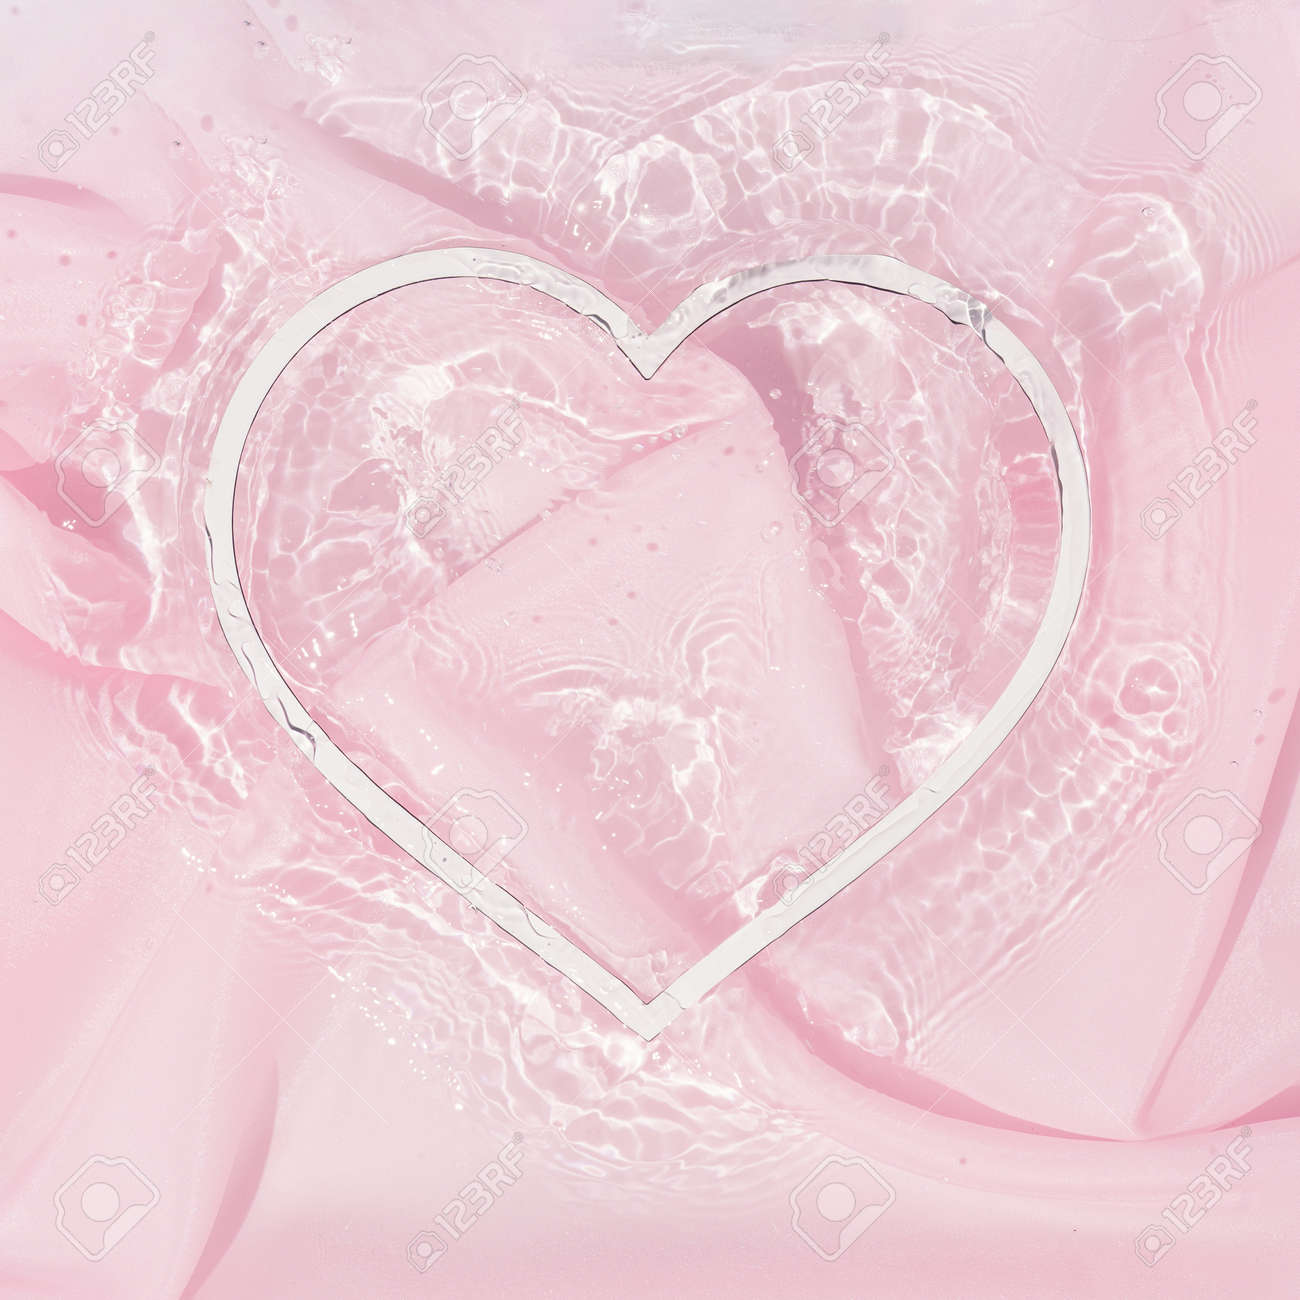 Heart shape copy space in water with silk fabric. Valentines or woman's day background design. Minimal flat lay nature. - 162580138